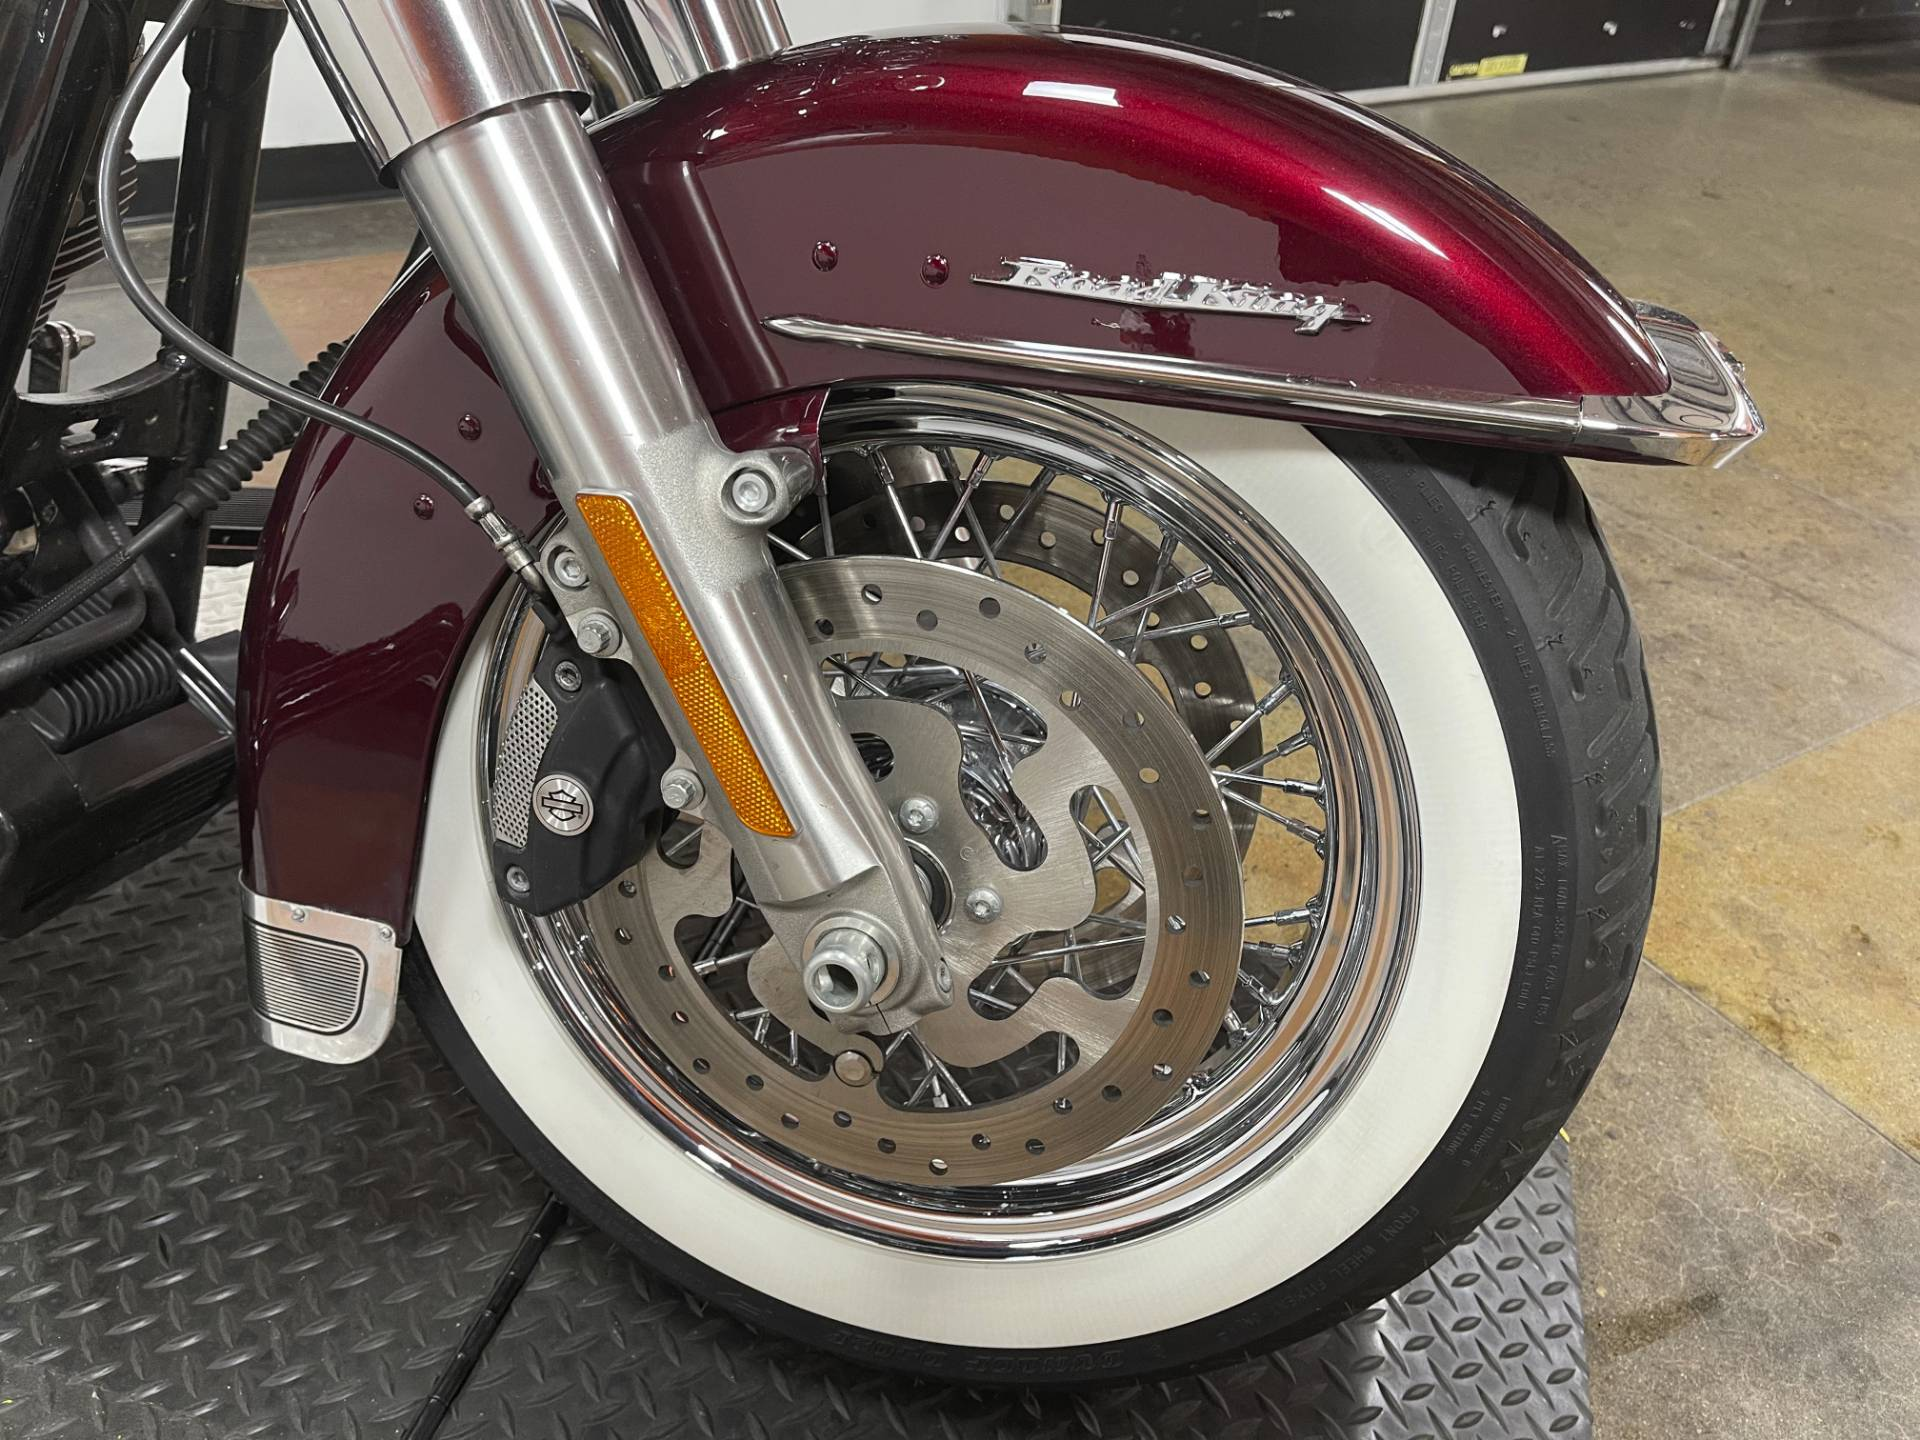 2014 Harley-Davidson Road King® in Marion, Illinois - Photo 4